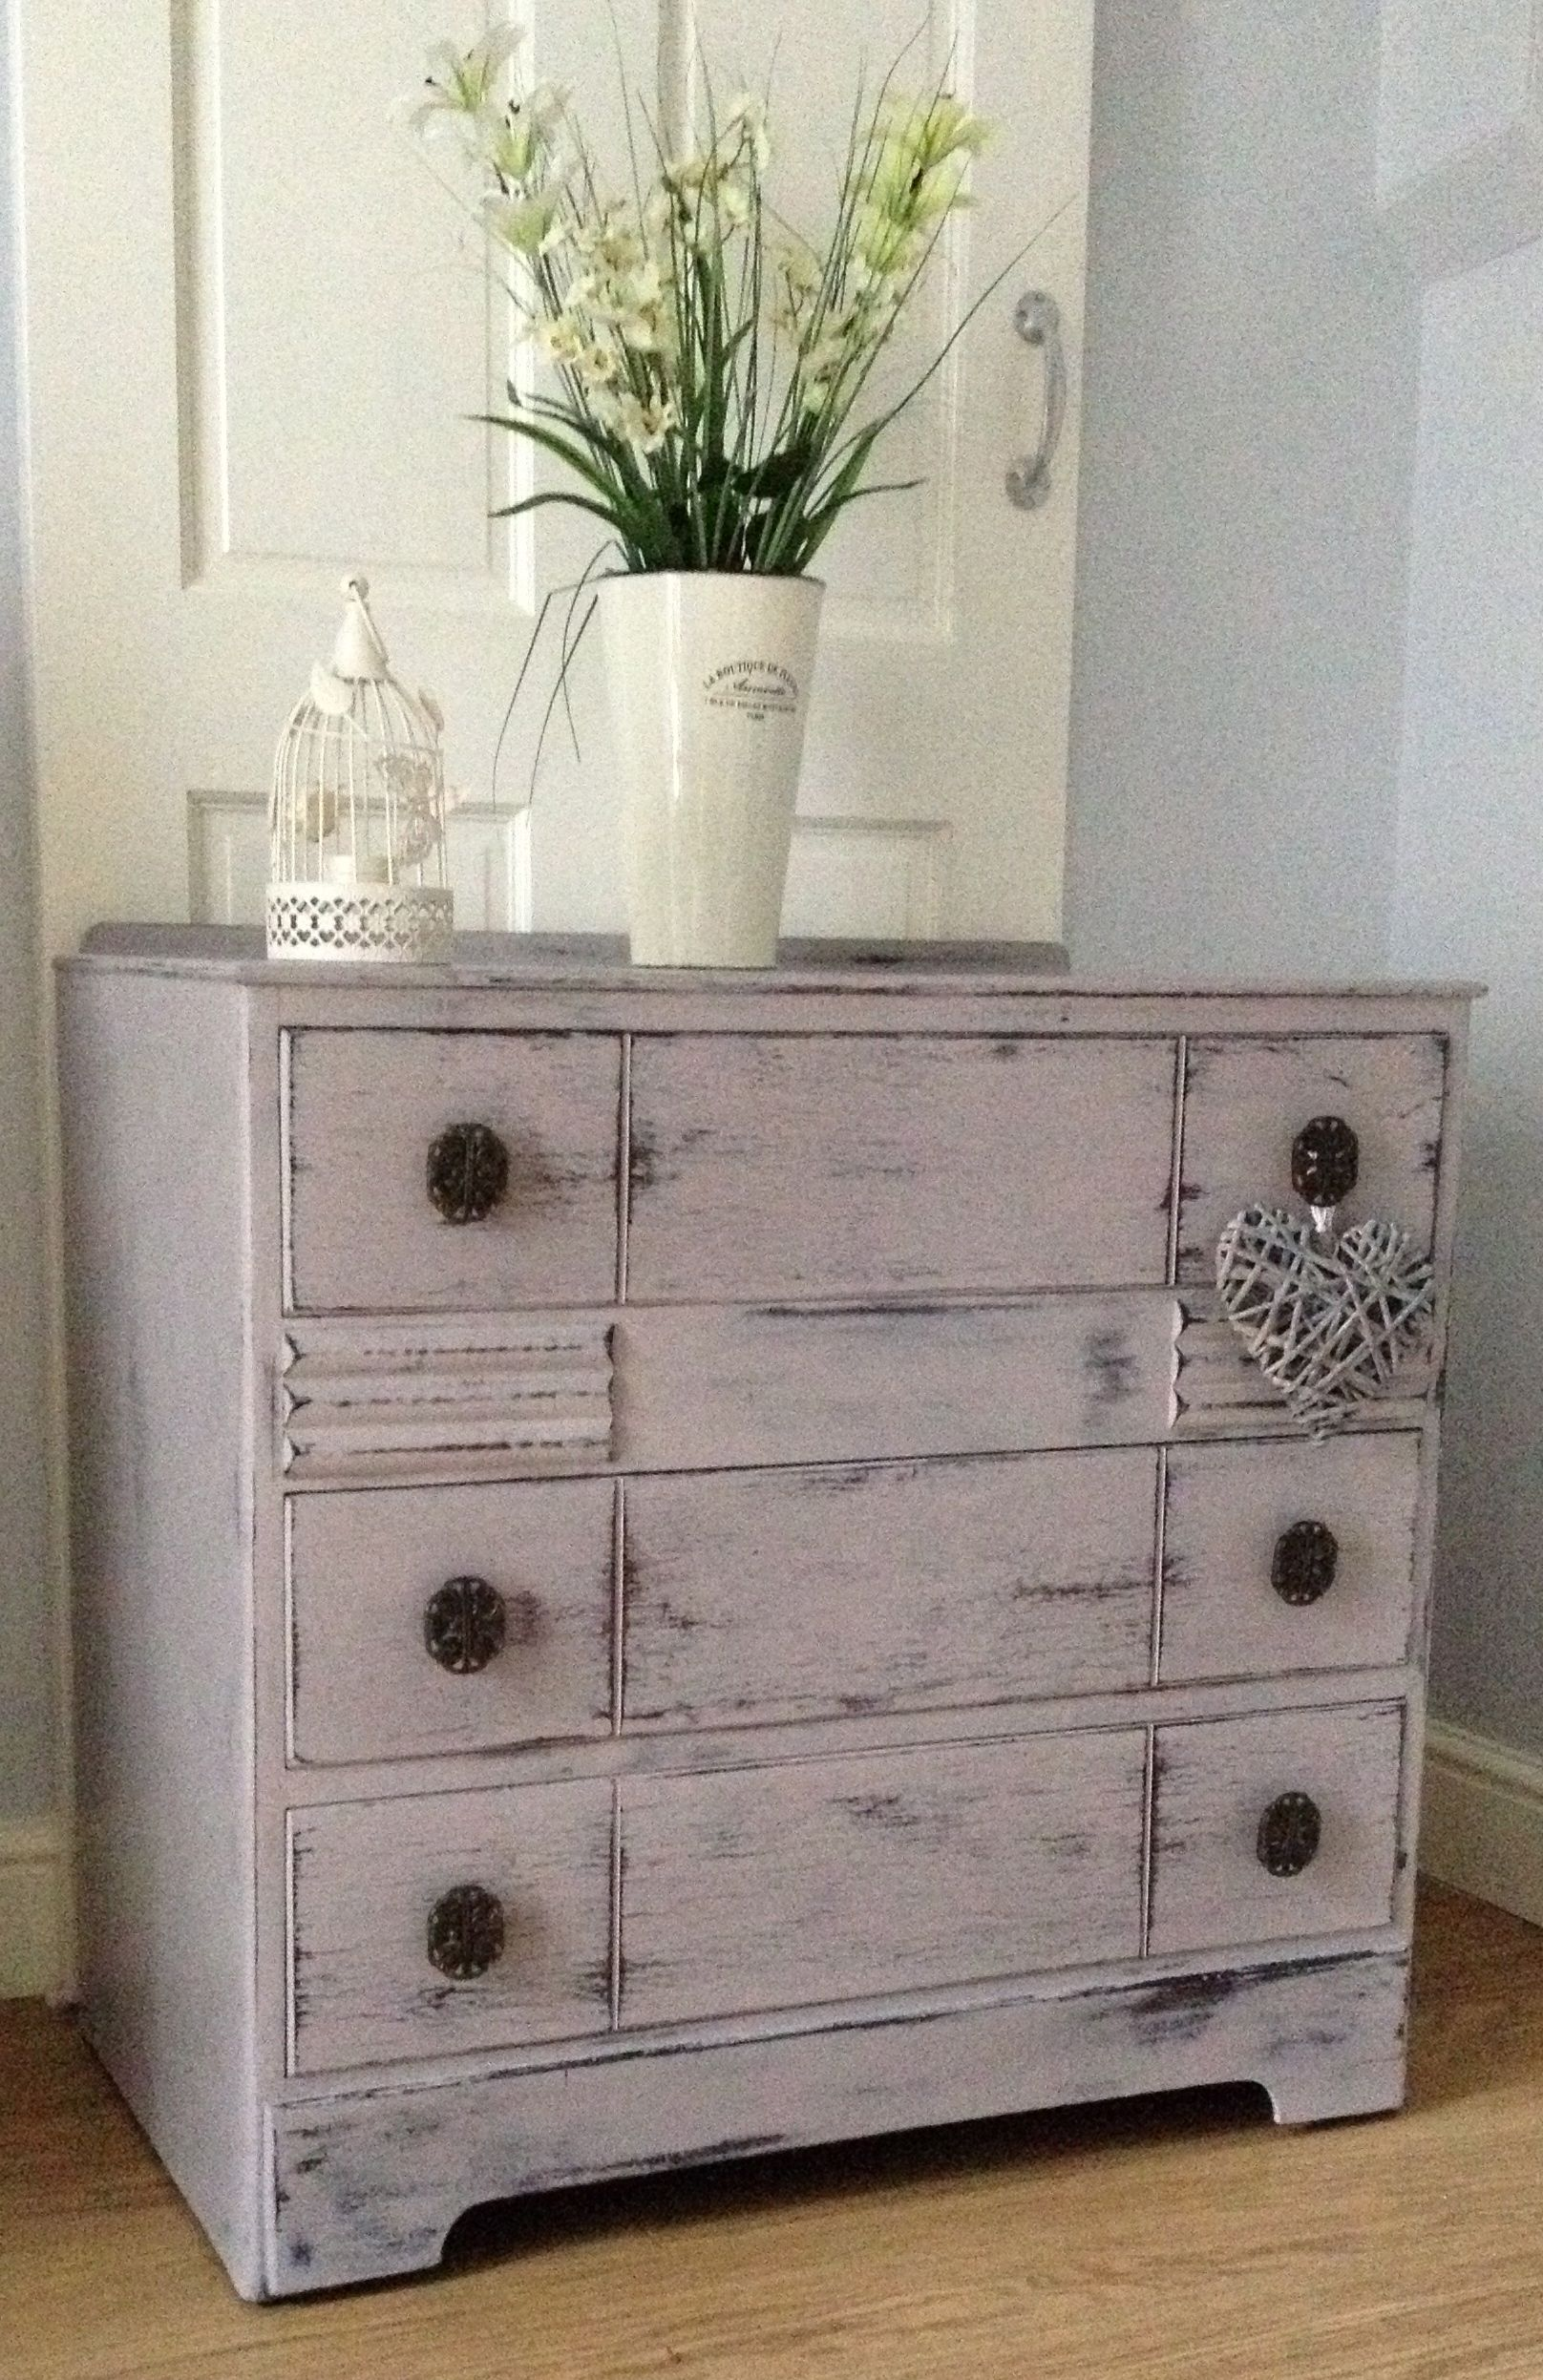 Chest Of Drawers In Annie Sloan Paloma Chalk Paint